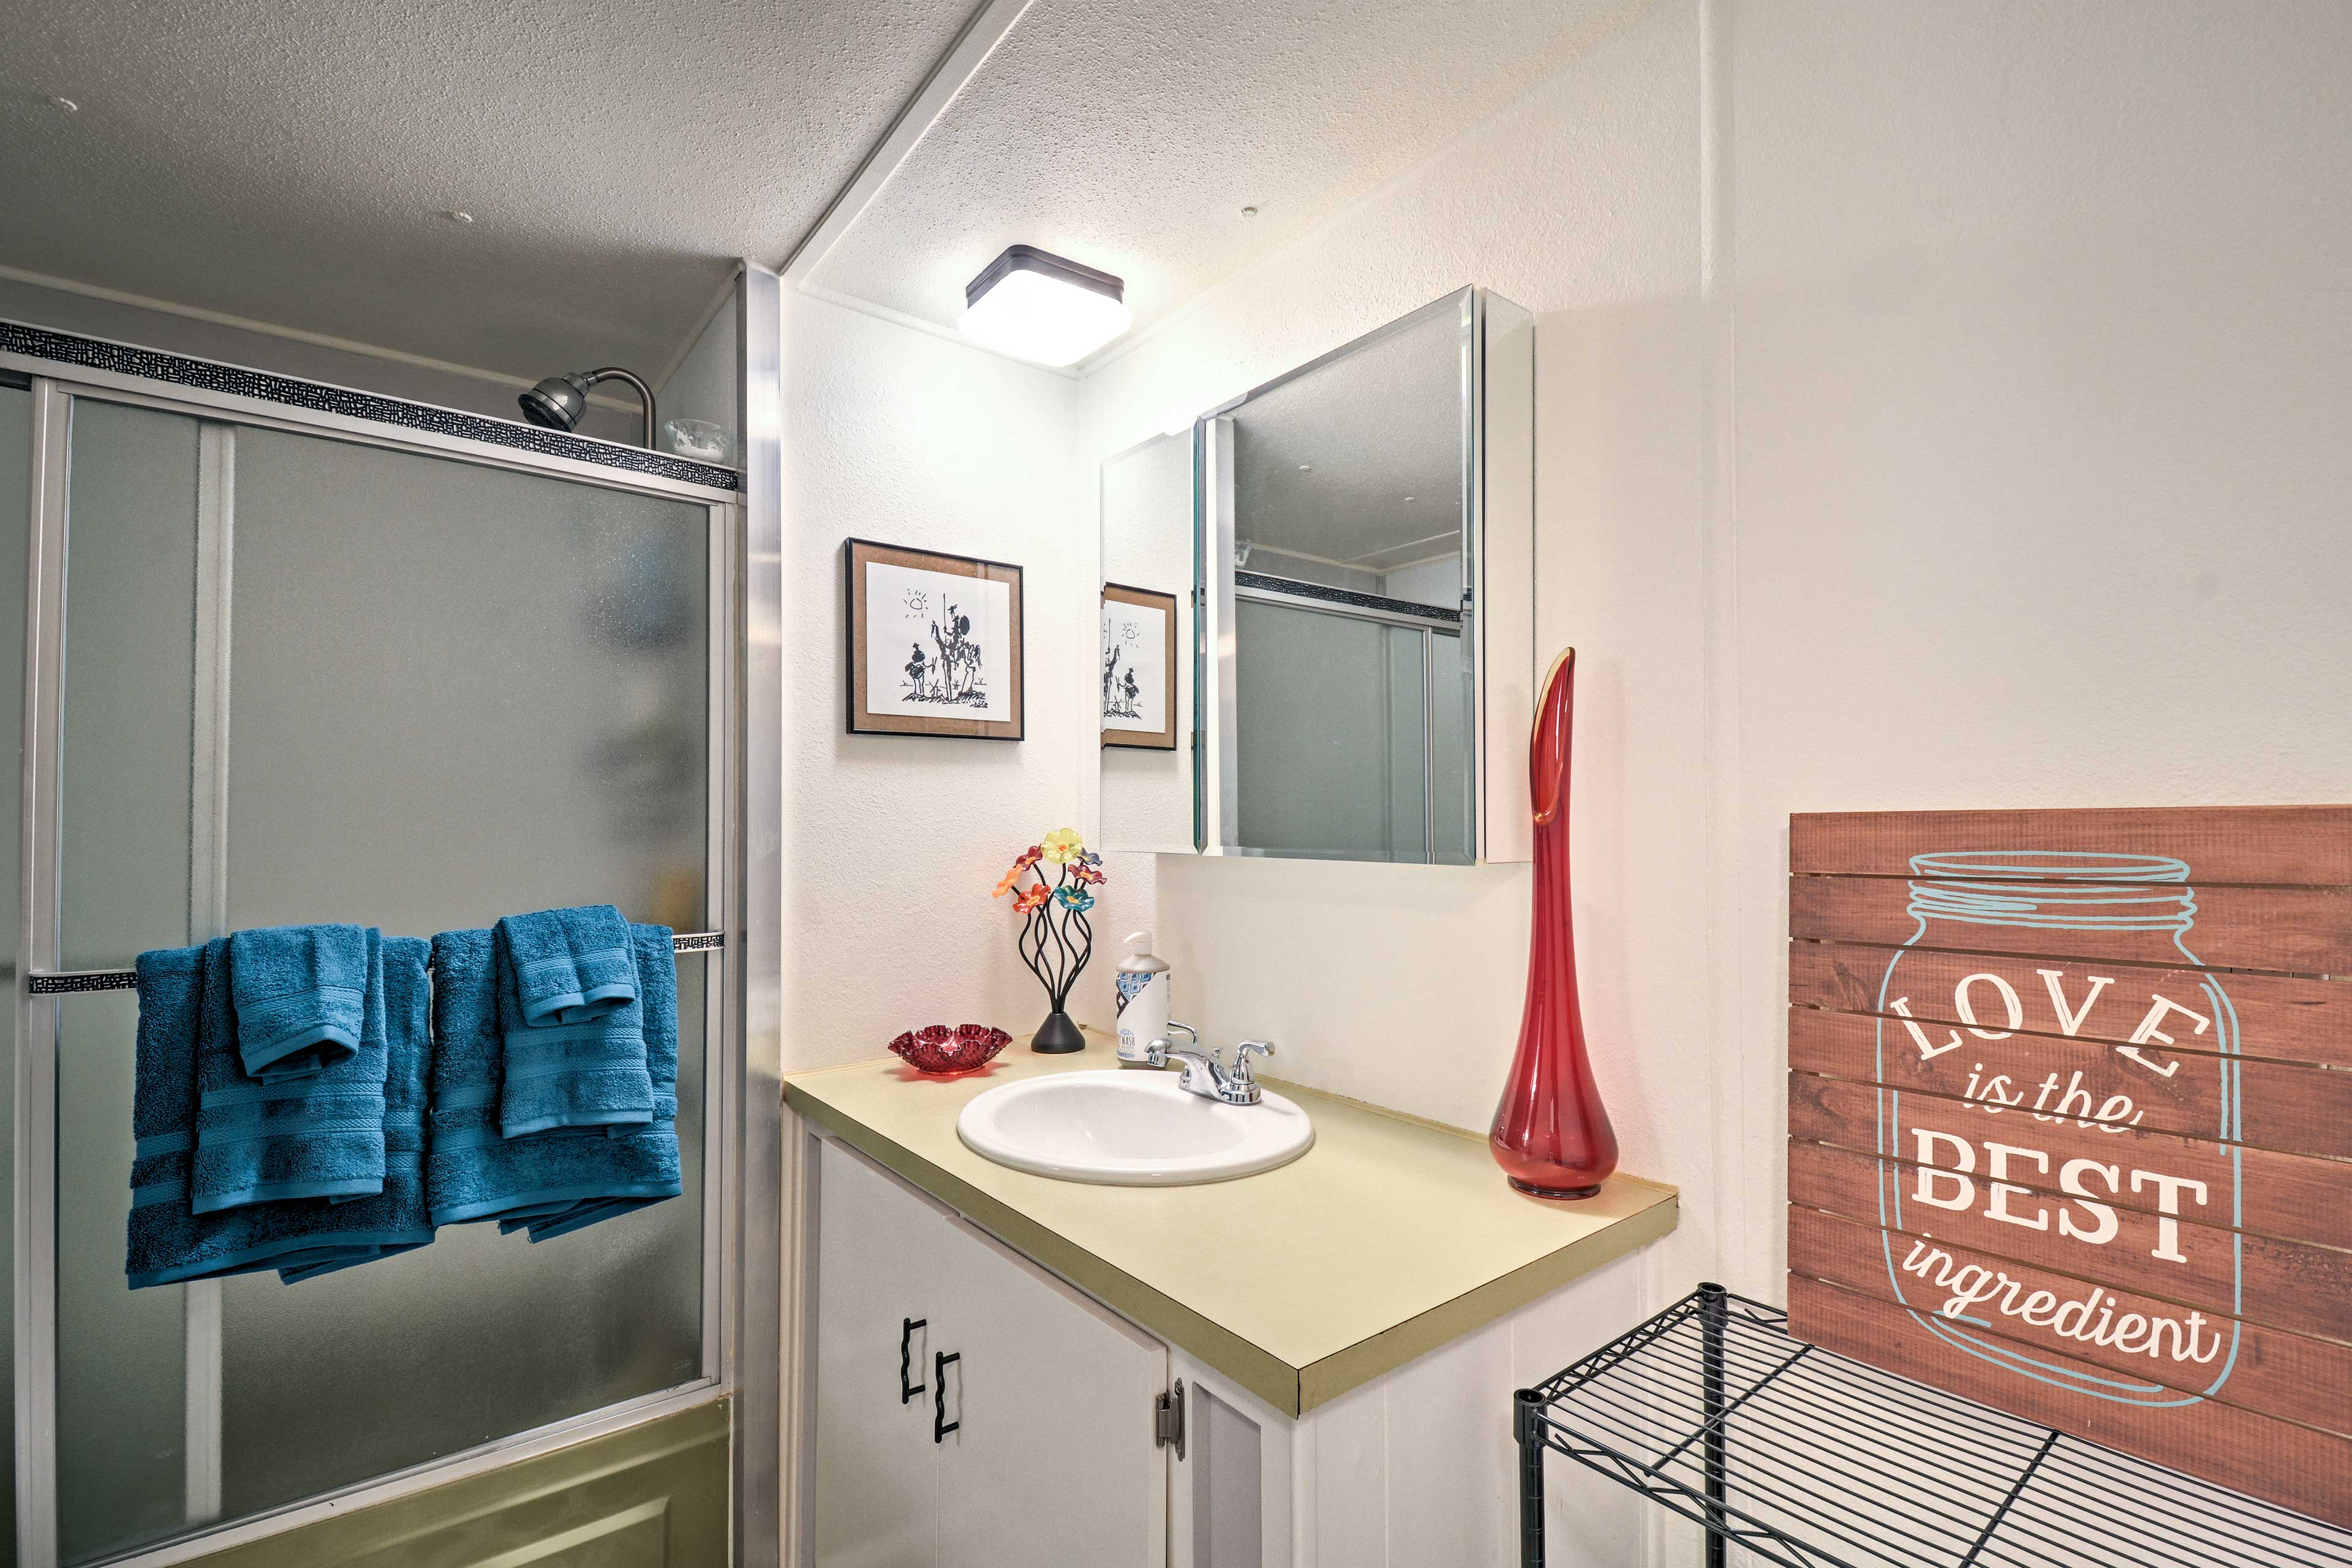 The second bathroom offers a spacious walk-in shower.